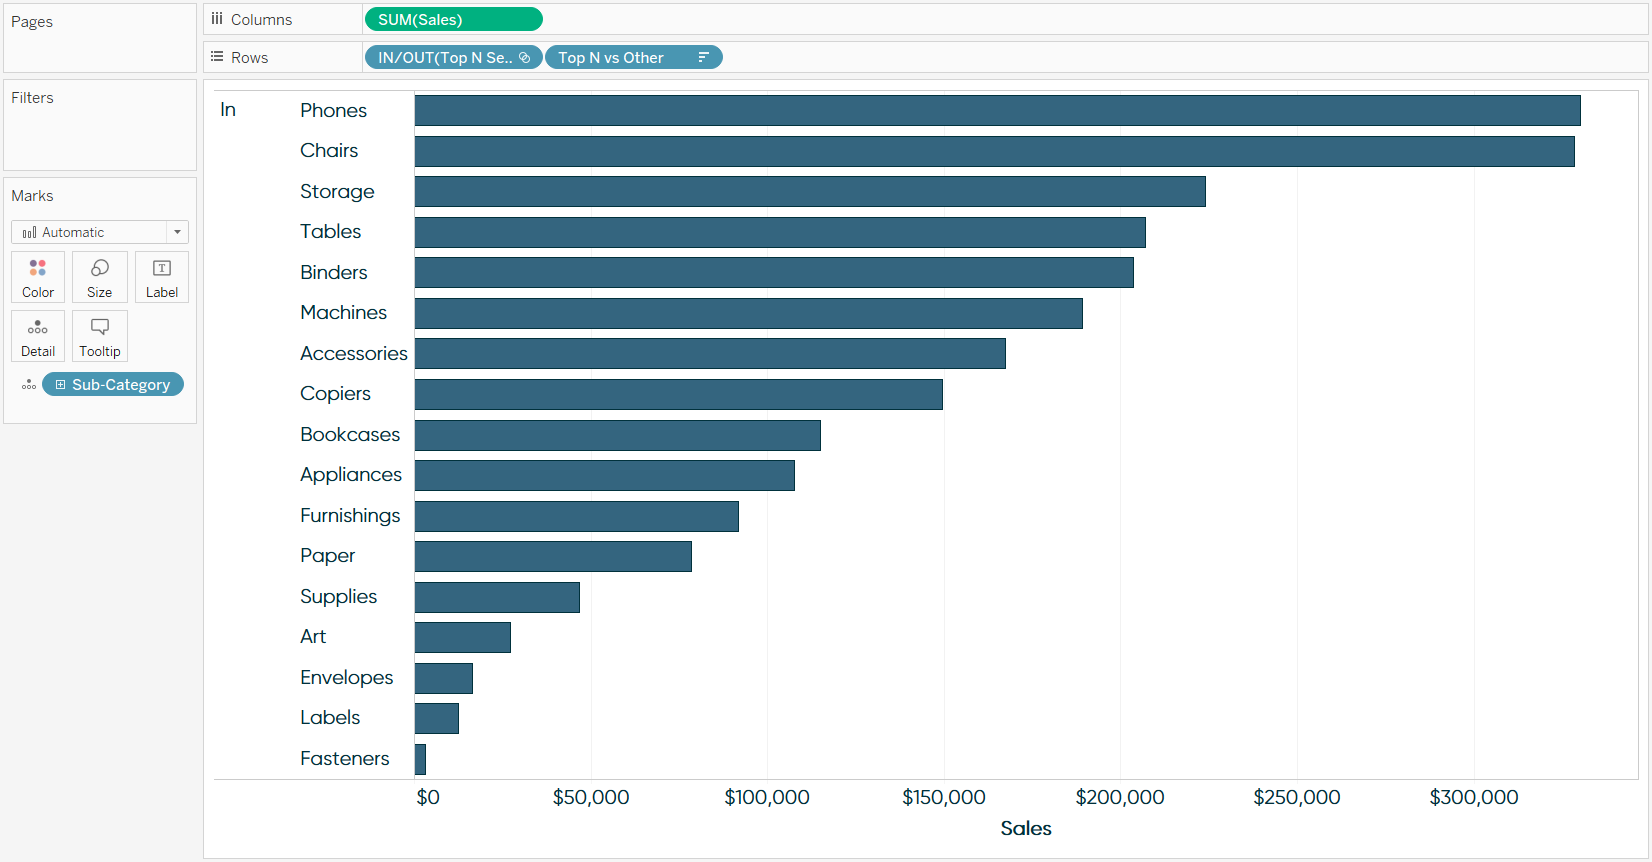 Sales by Top N vs Other Bar Chart with Sub-Category on Detail in Tableau